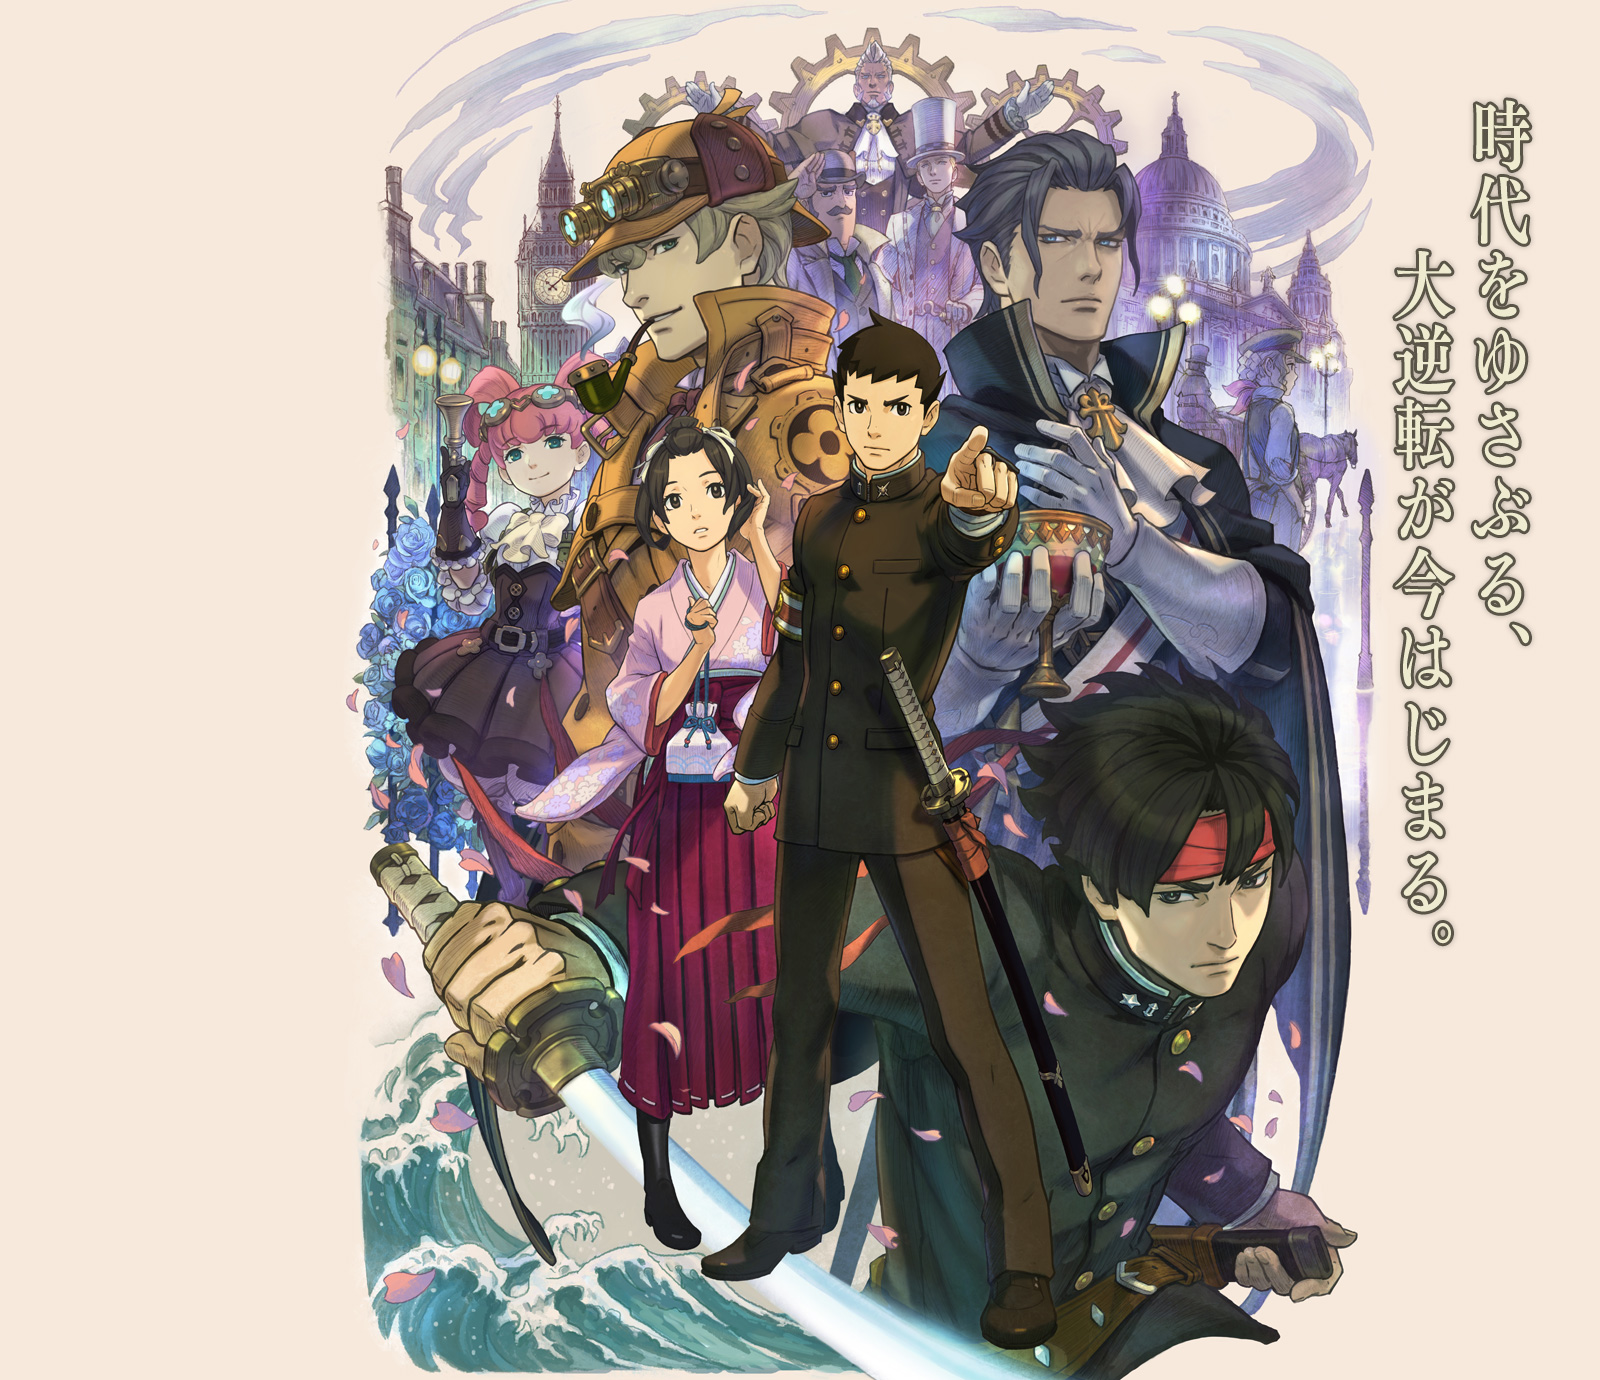 [2019][Capcom] The Great Ace Attorney -The Adventures of Ryuunosuke Naruhodou- [APK]